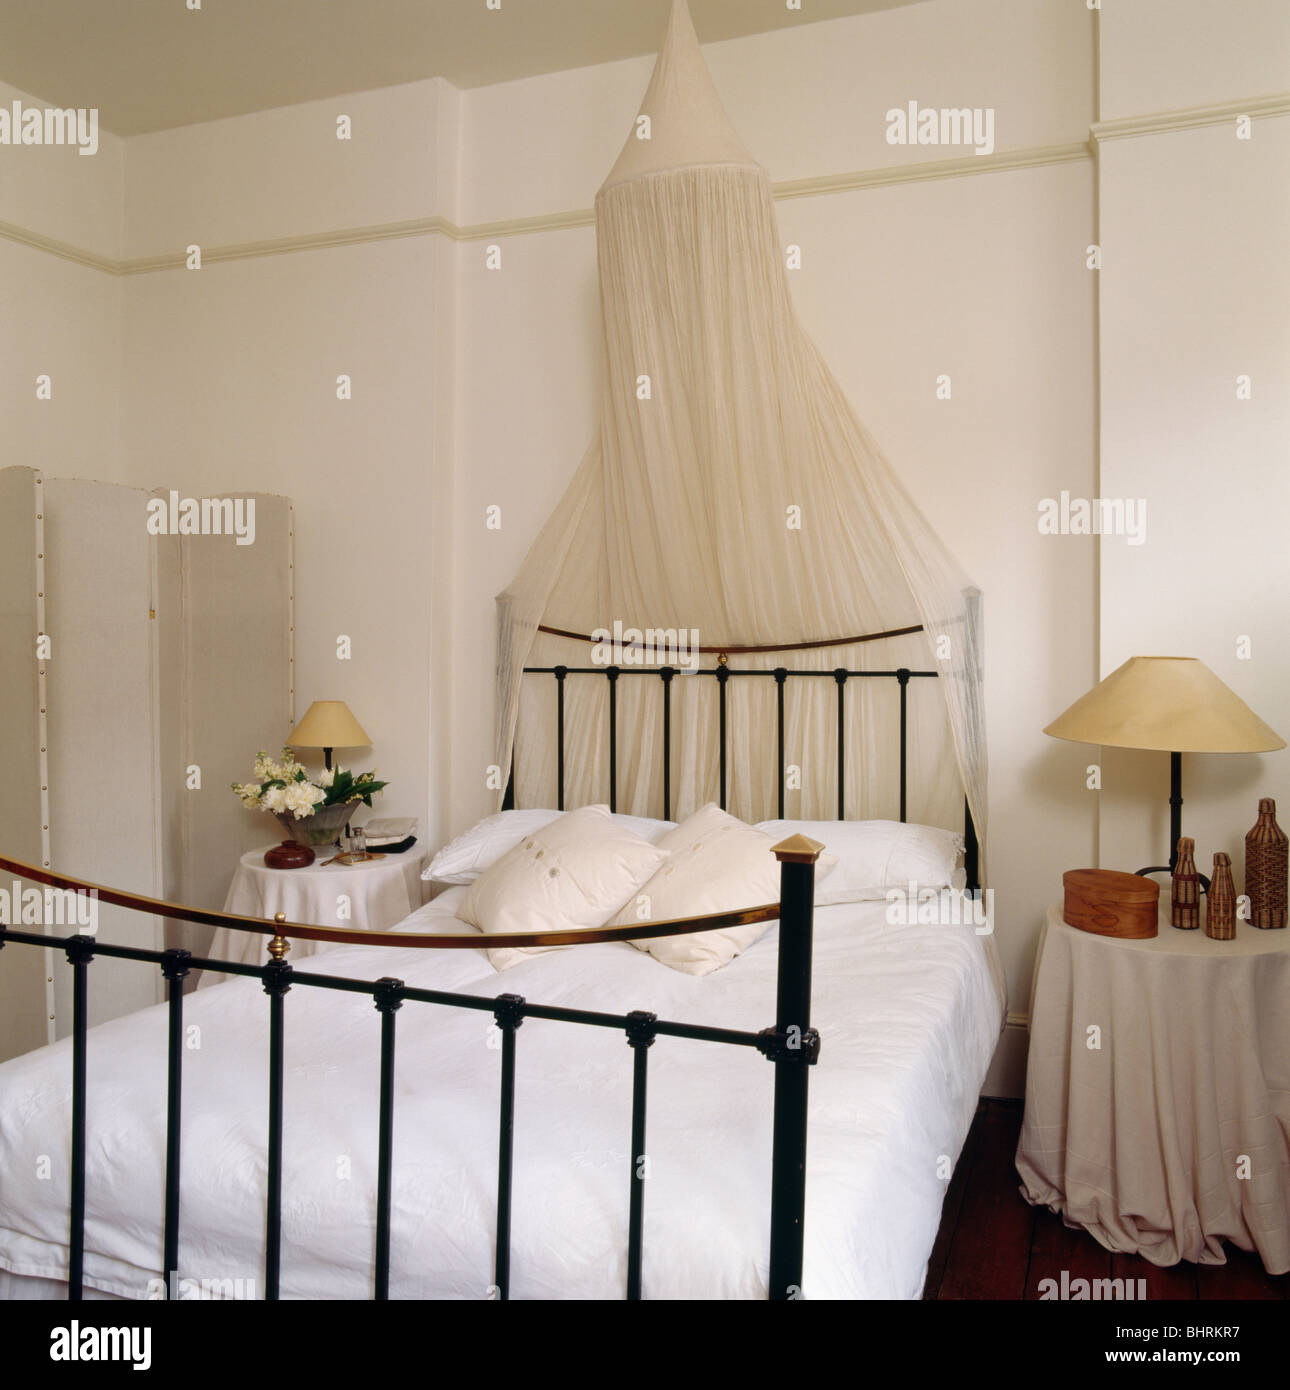 Picture of: White Mosquito Net Above Black Wrought Iron Bed With White Bedlinen Stock Photo Alamy